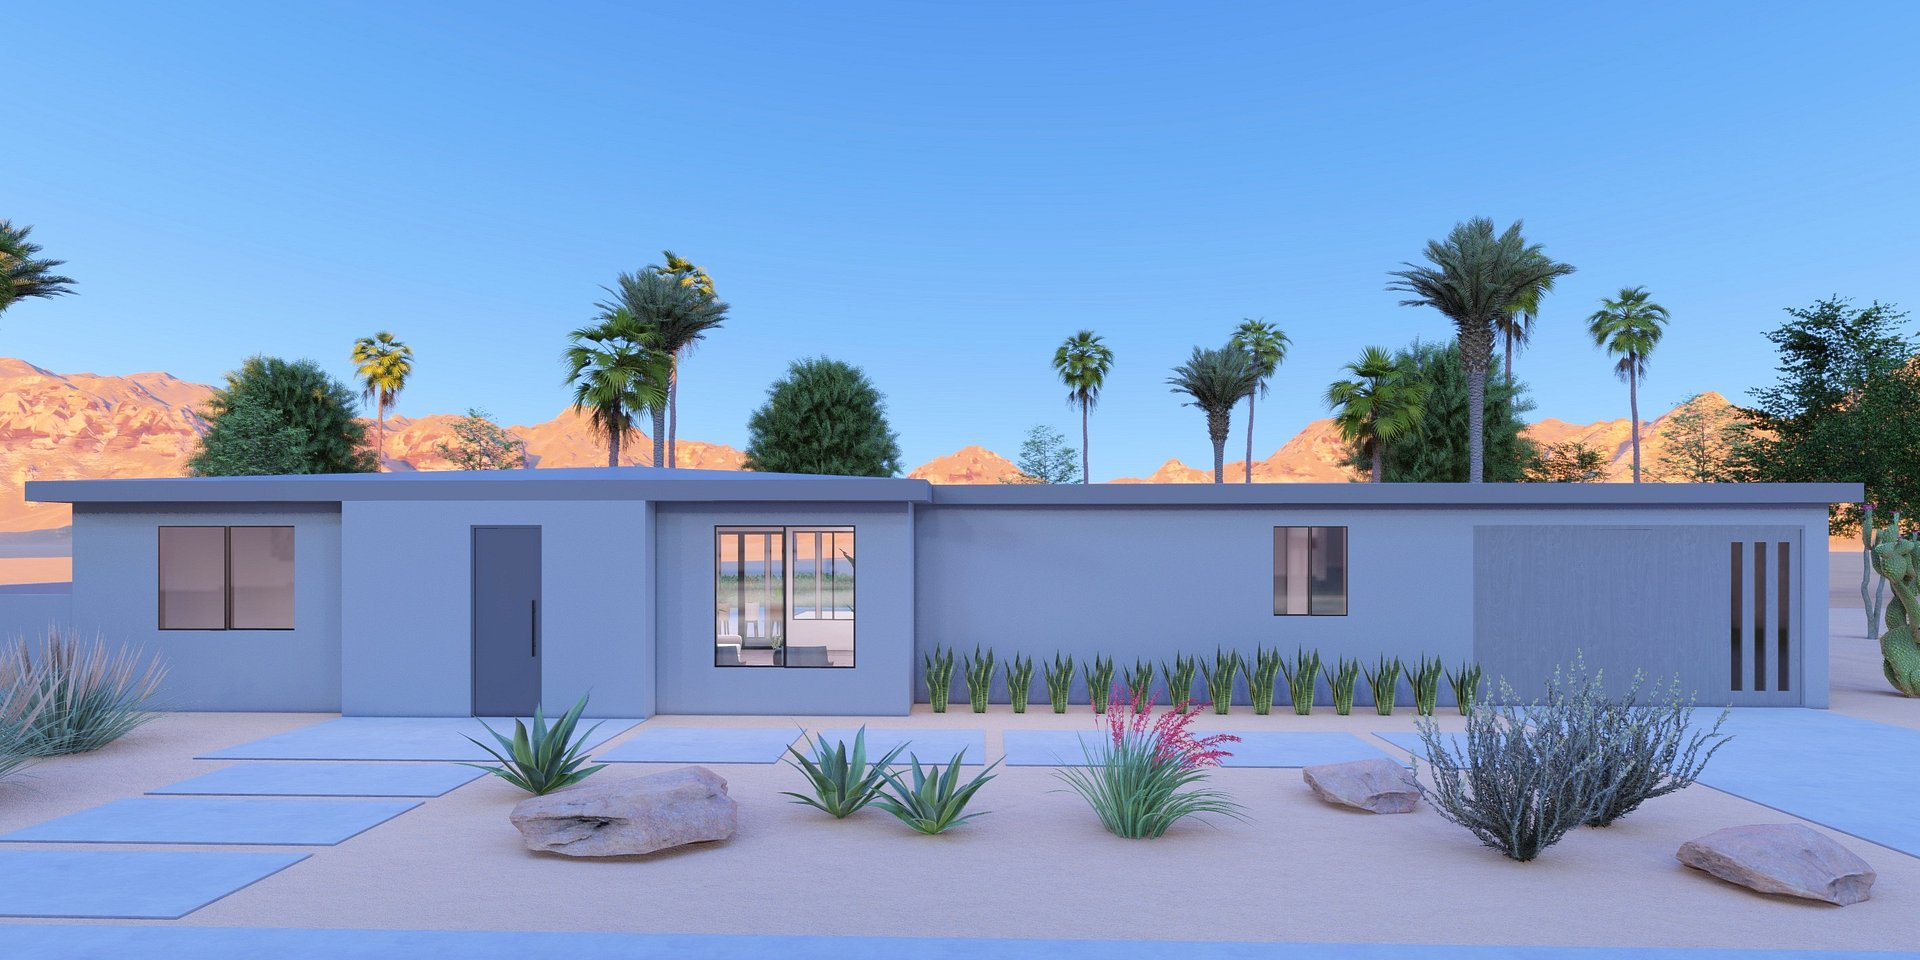 Coldwell Banker Realty Lists Palm Springs Property for $1.349 Million